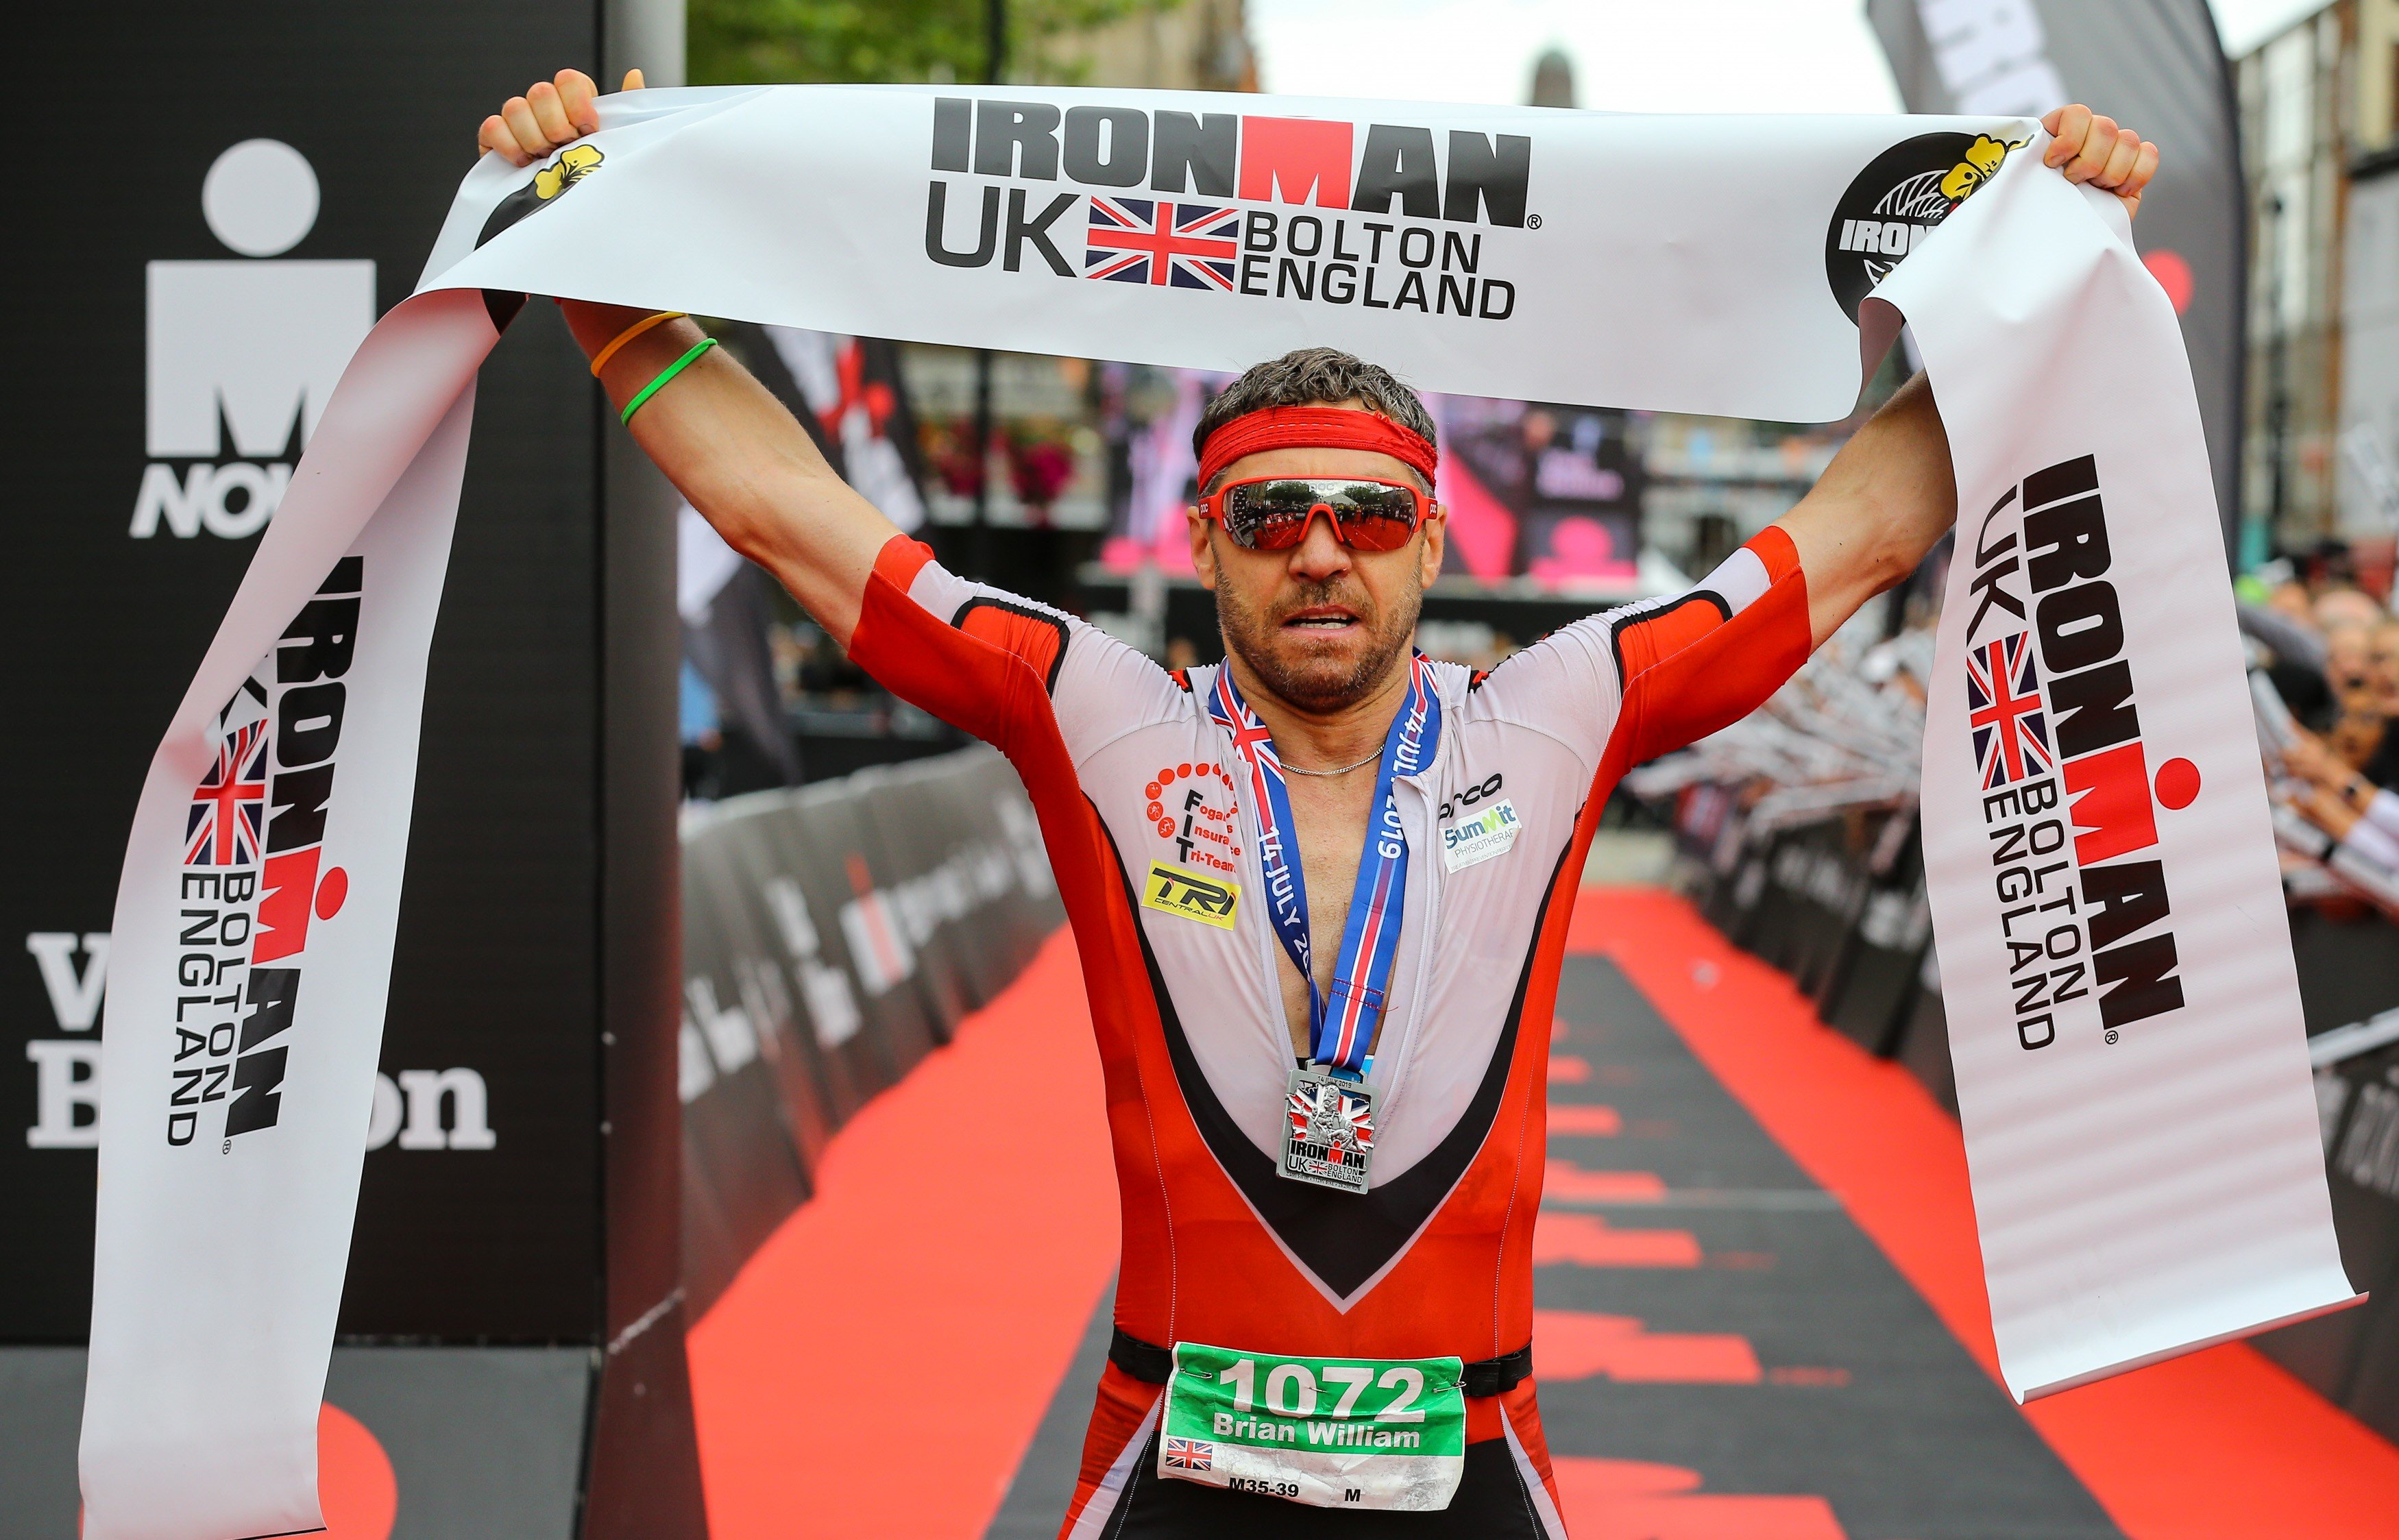 IRONMAN UK 2021 registration to open